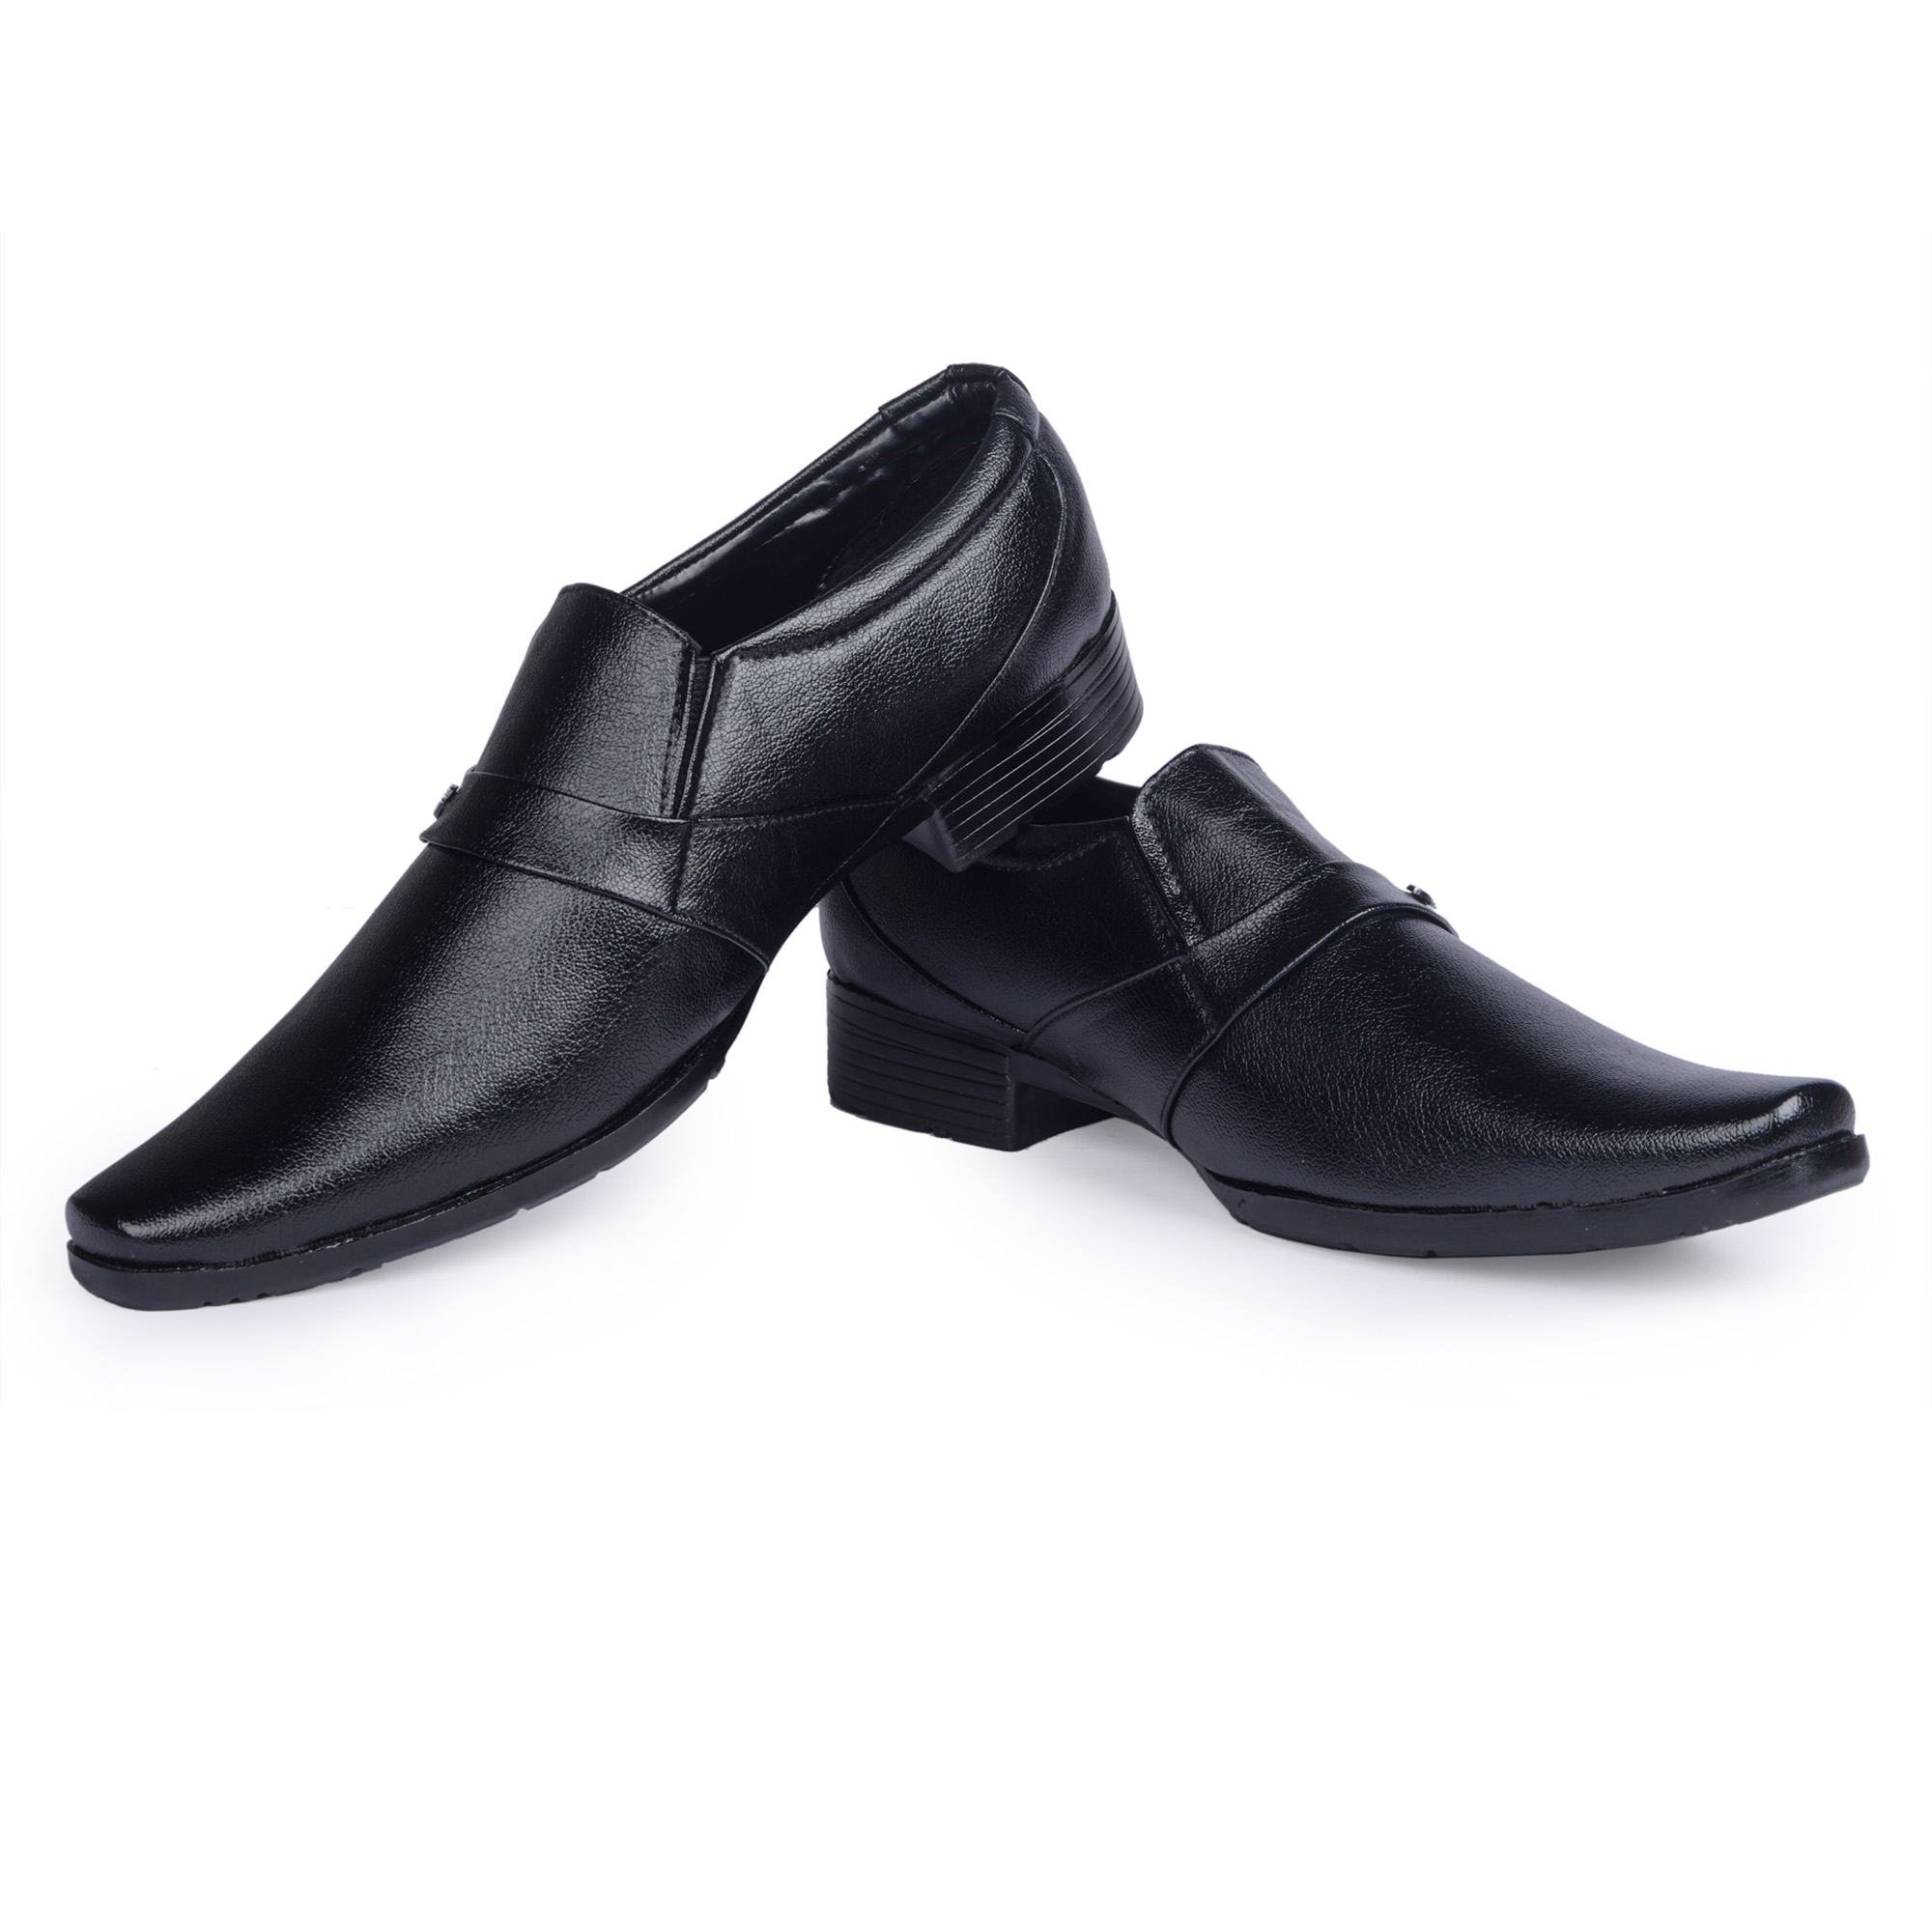 banjoy black formal shoes prices in india shopclues